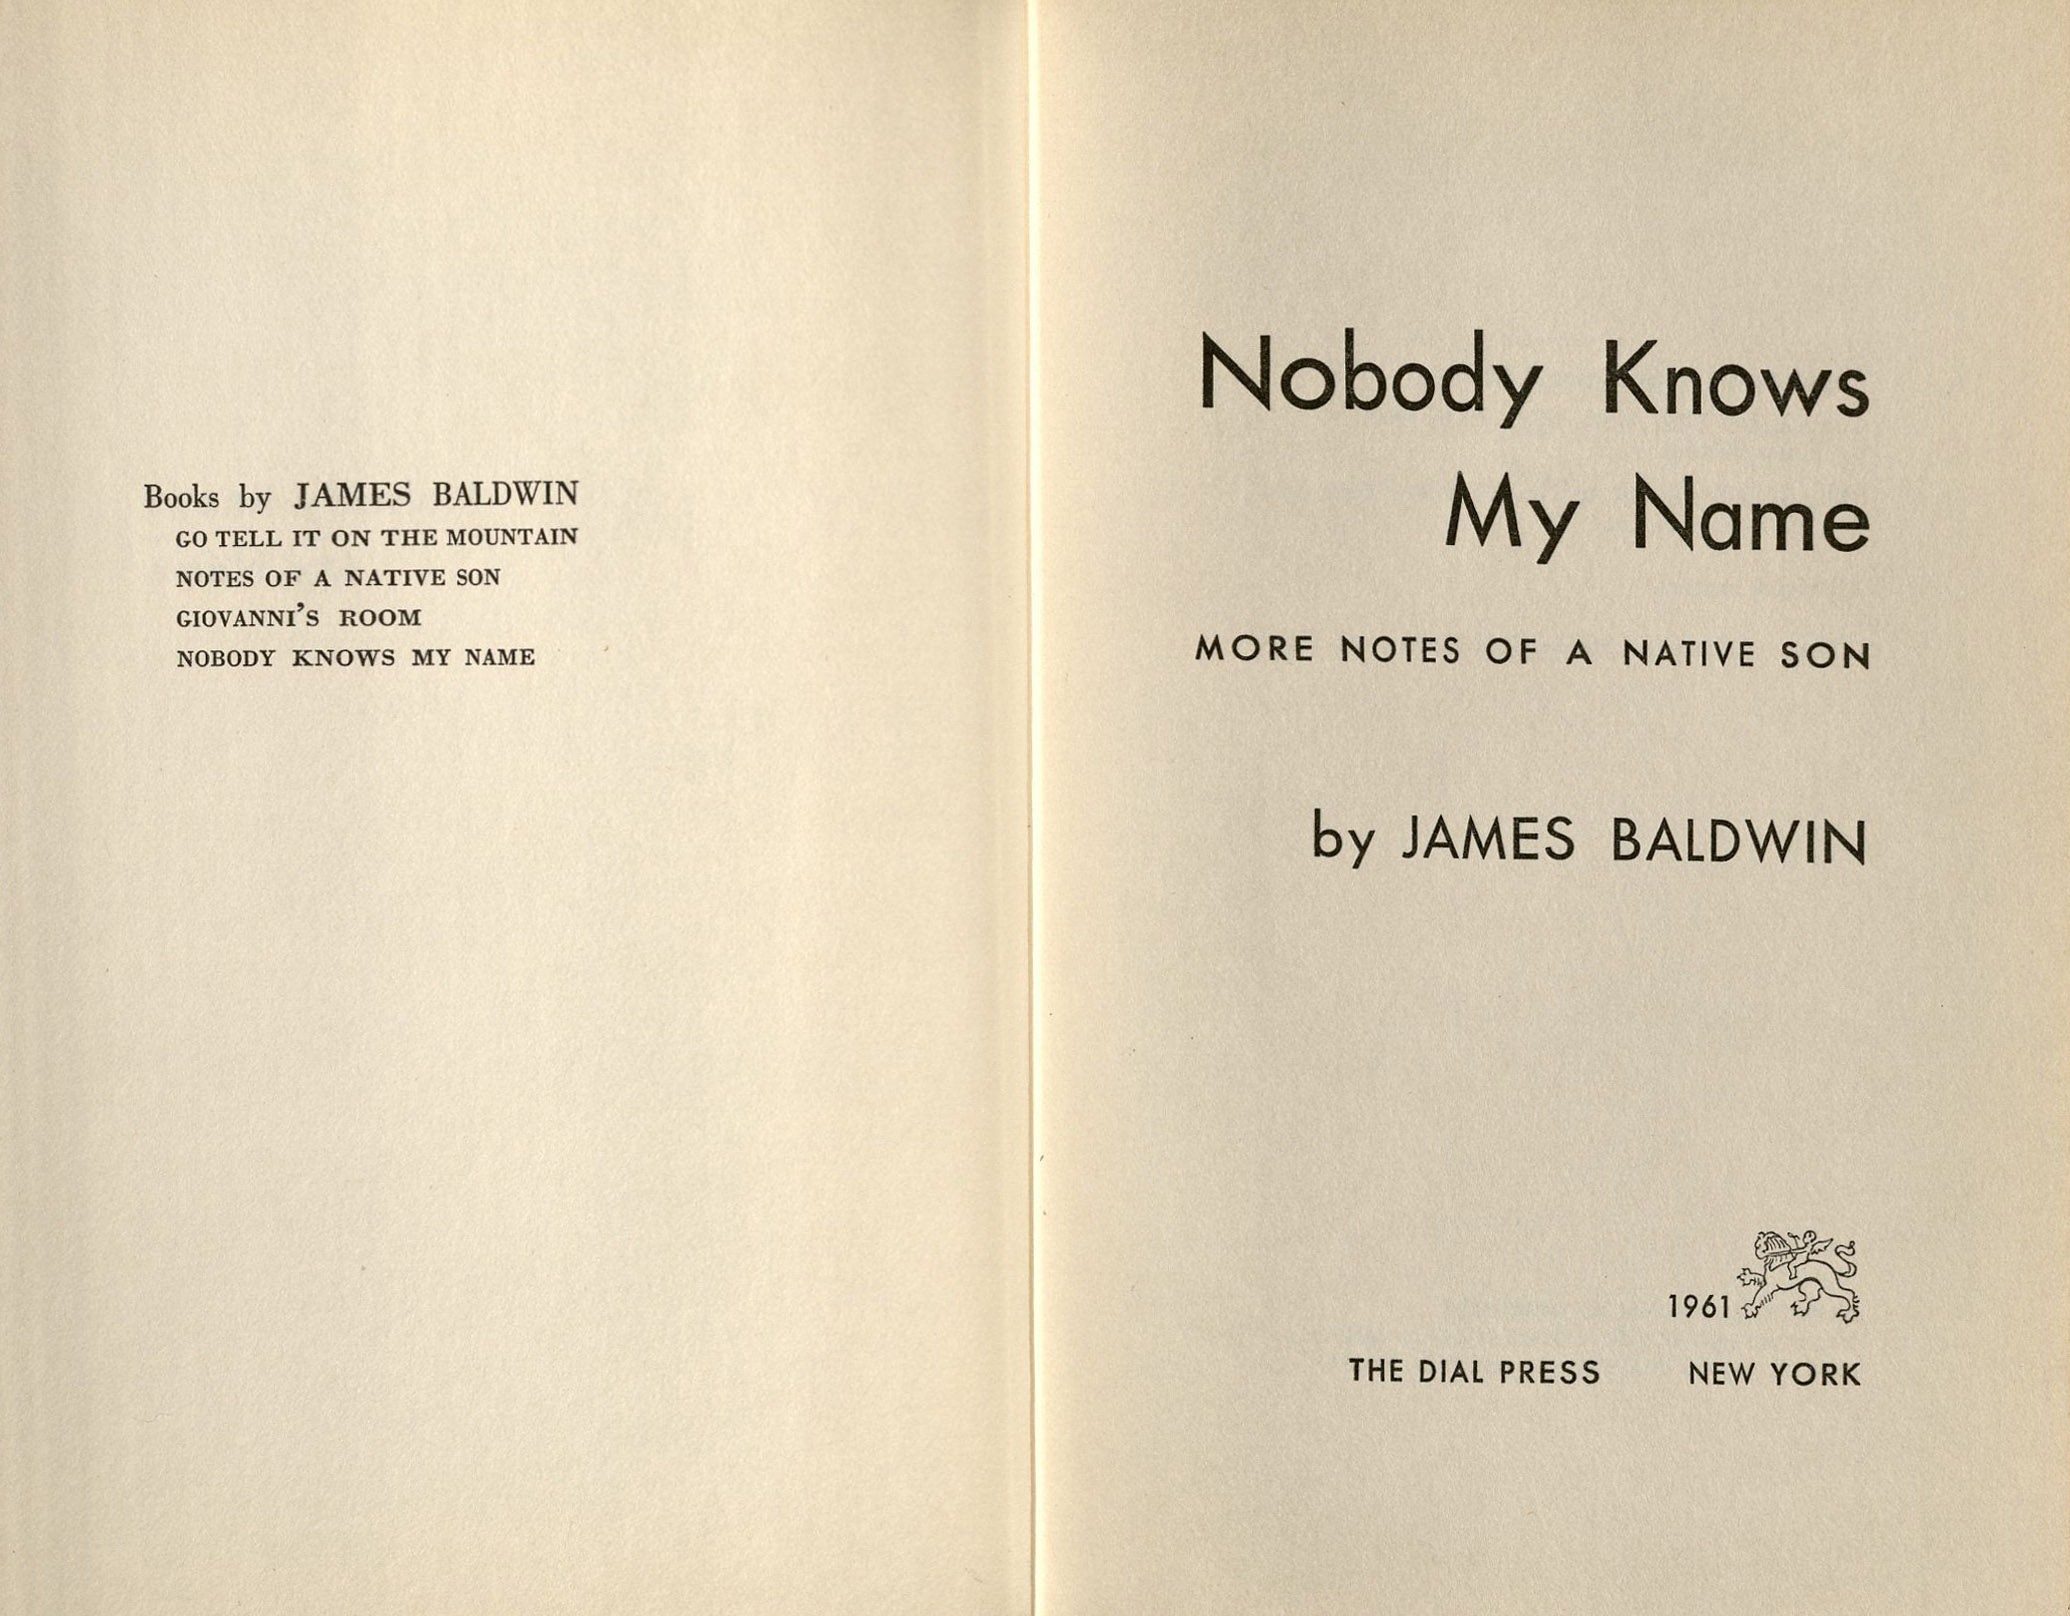 the works of james baldwin oviatt library title page of nobody knows my more notes of a native son